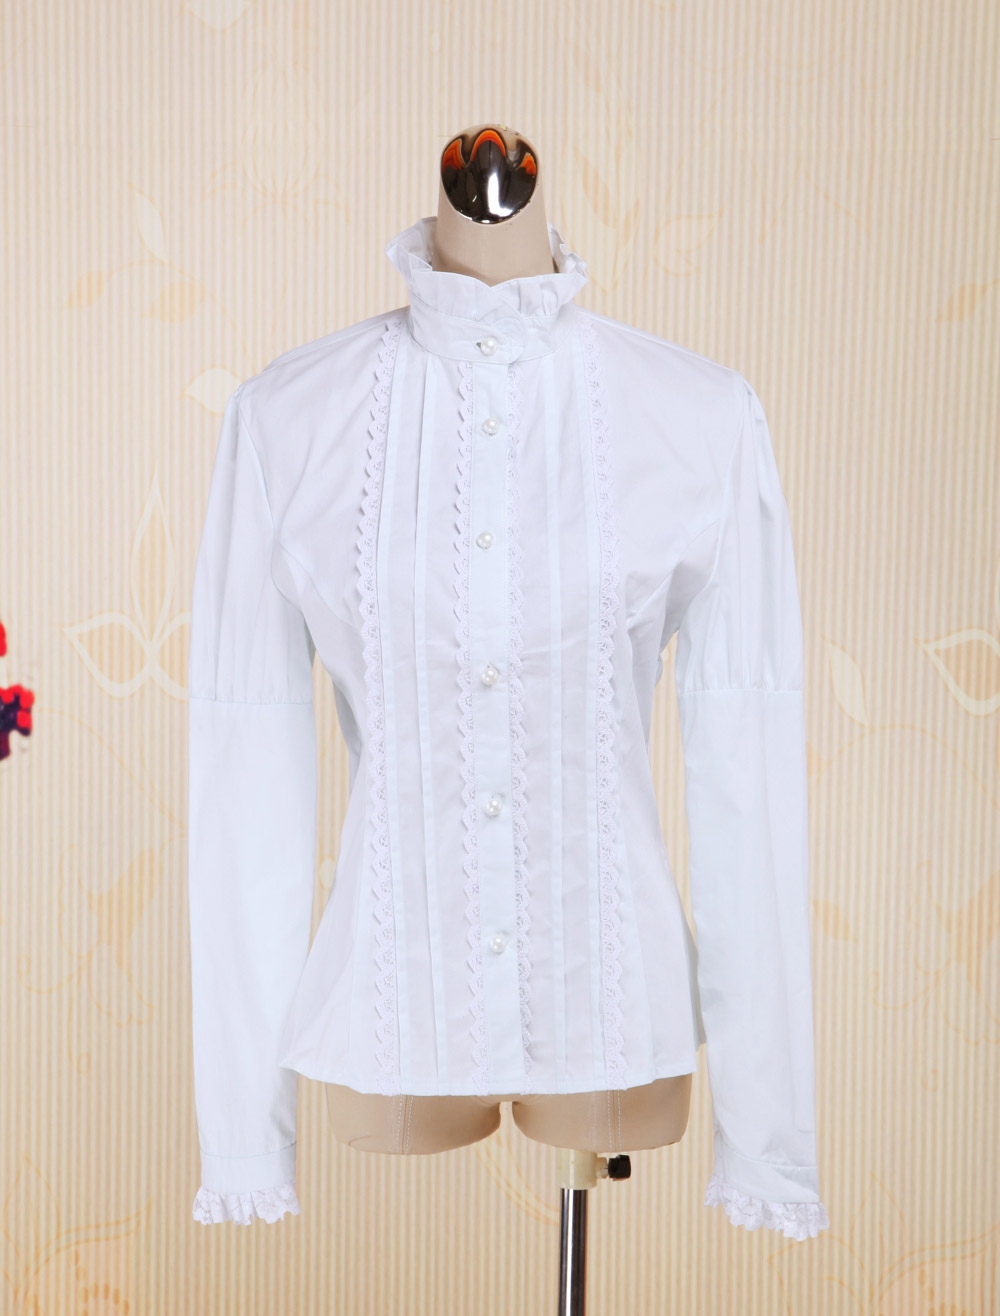 Buy White Cotton Lolita Blouse Long Sleeves Stand Collar Lace Trim Ruffles for $46.99 in Milanoo store